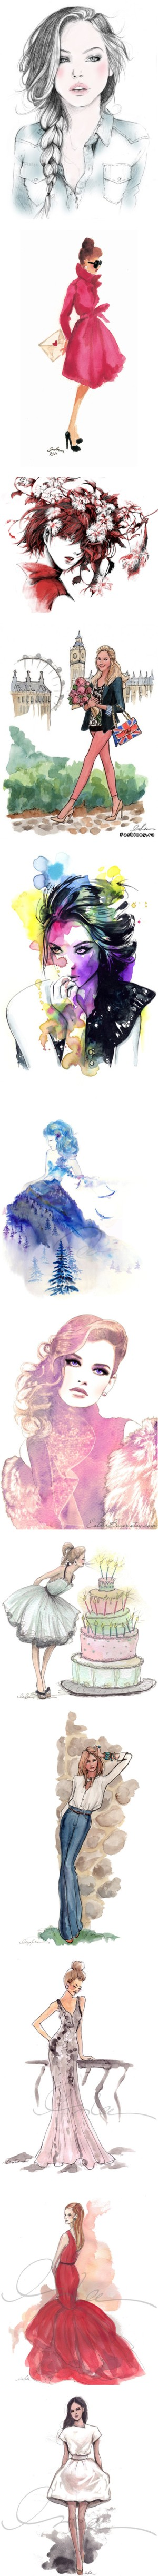 SKETCHES & PEOPLE by mevsab on Polyvore featuring drawings, fillers, sketches, backgrounds, people, doodles, text, quotes, embellishments and detail